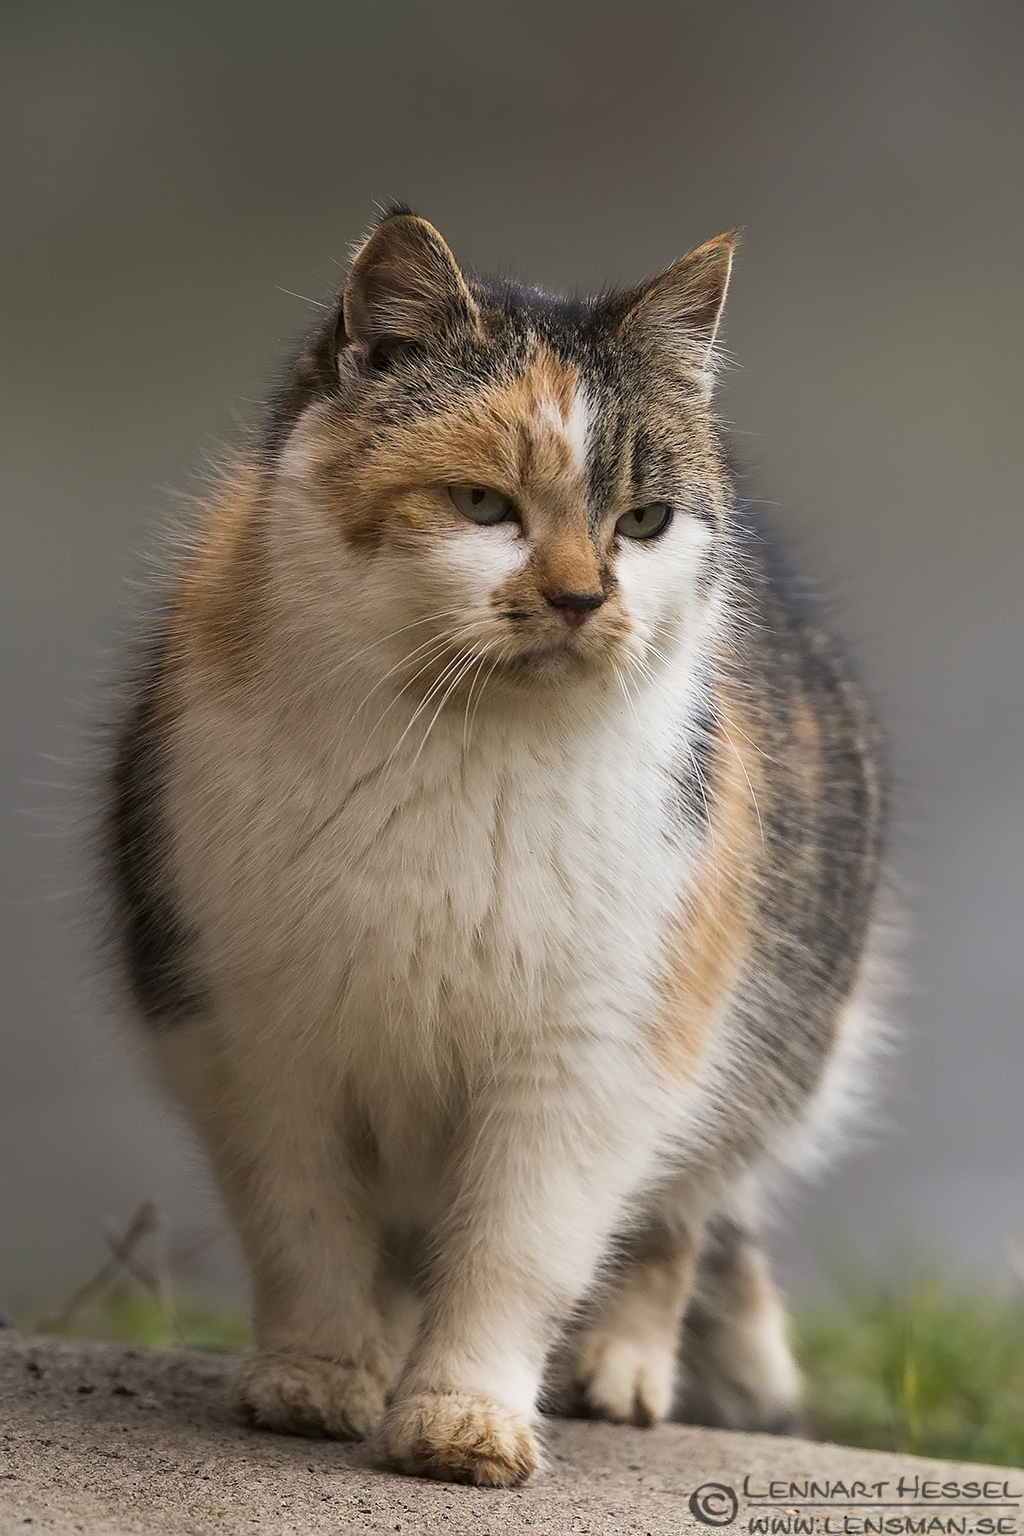 The house cat in Hungary